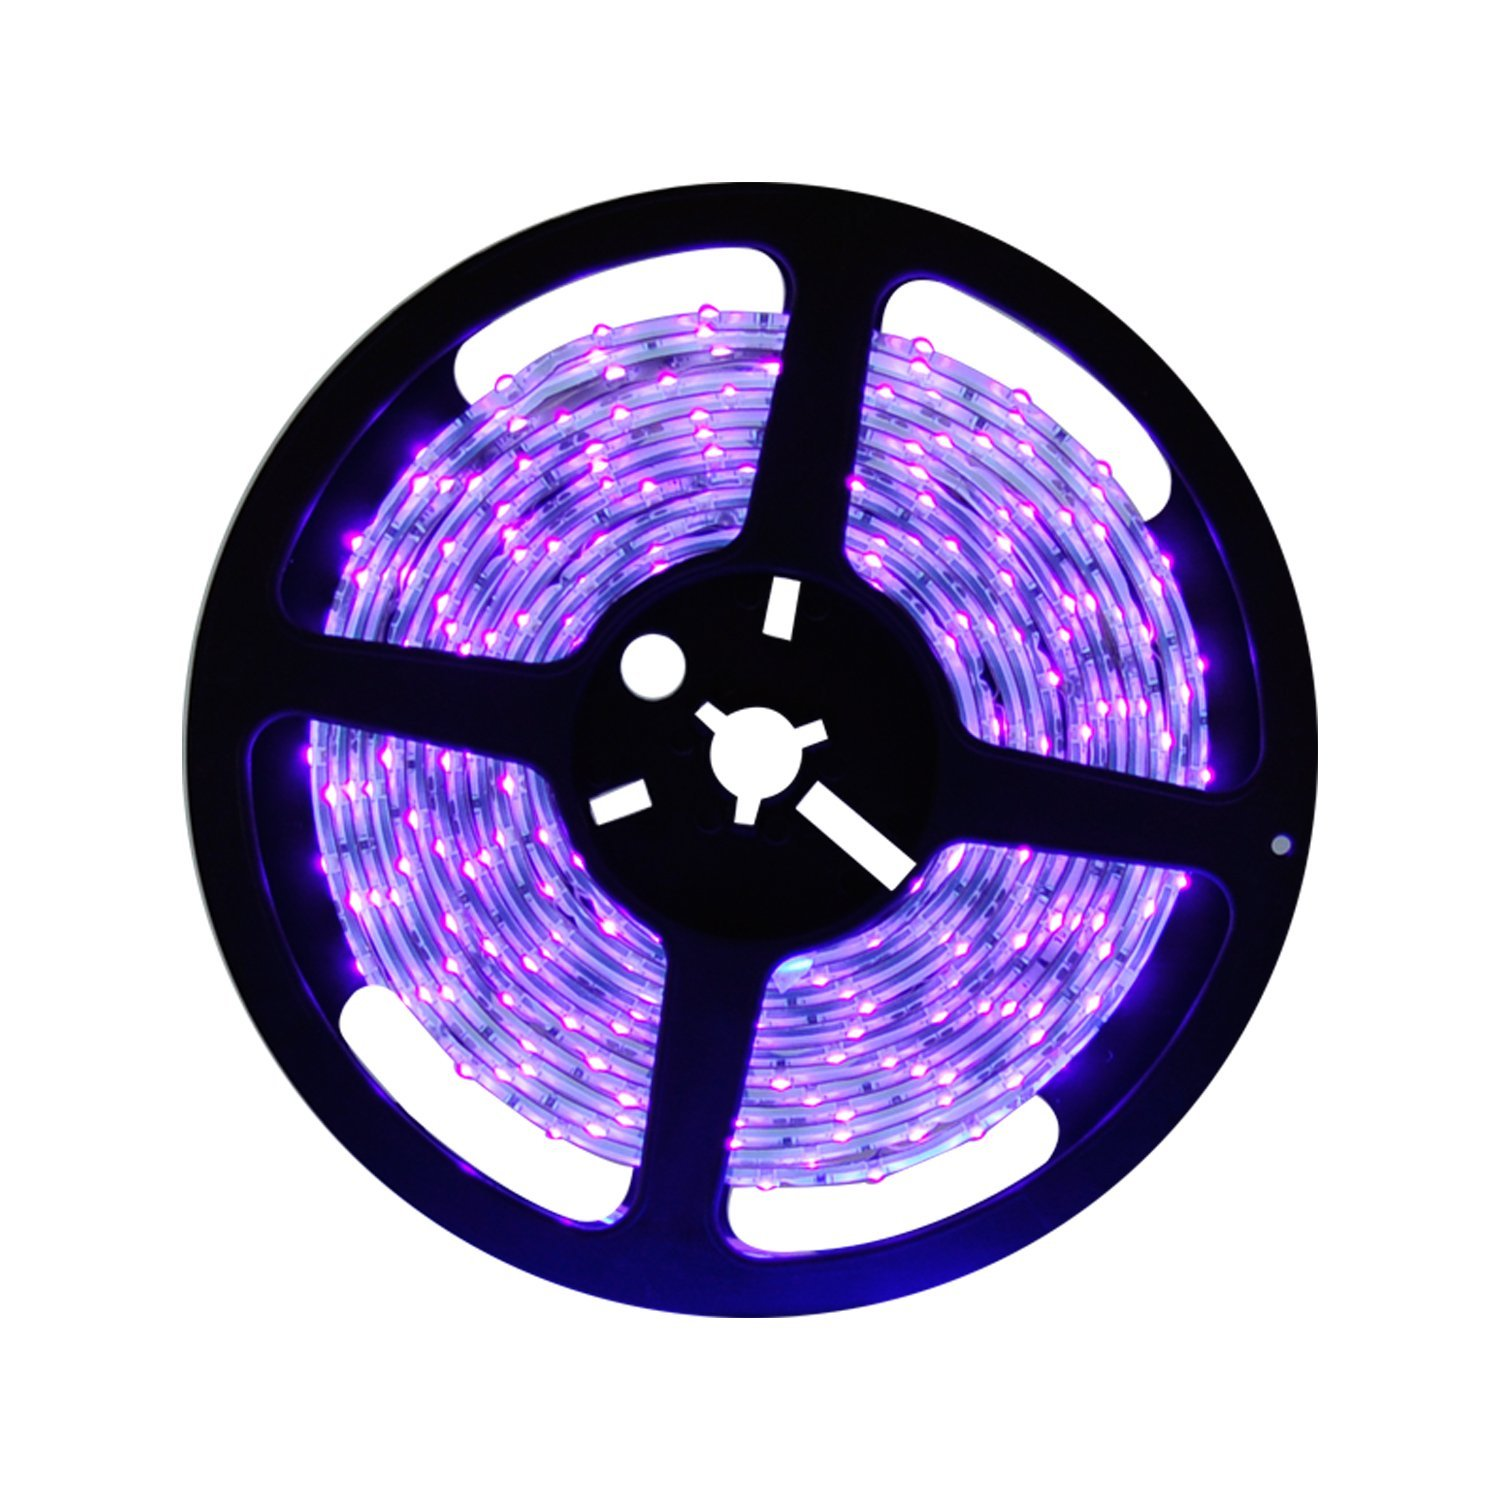 DeepDream Black Light UV Led Strip 16.4Ft/5M 24W Flexible Waterproof IP65 with 12V 2A Power Supply